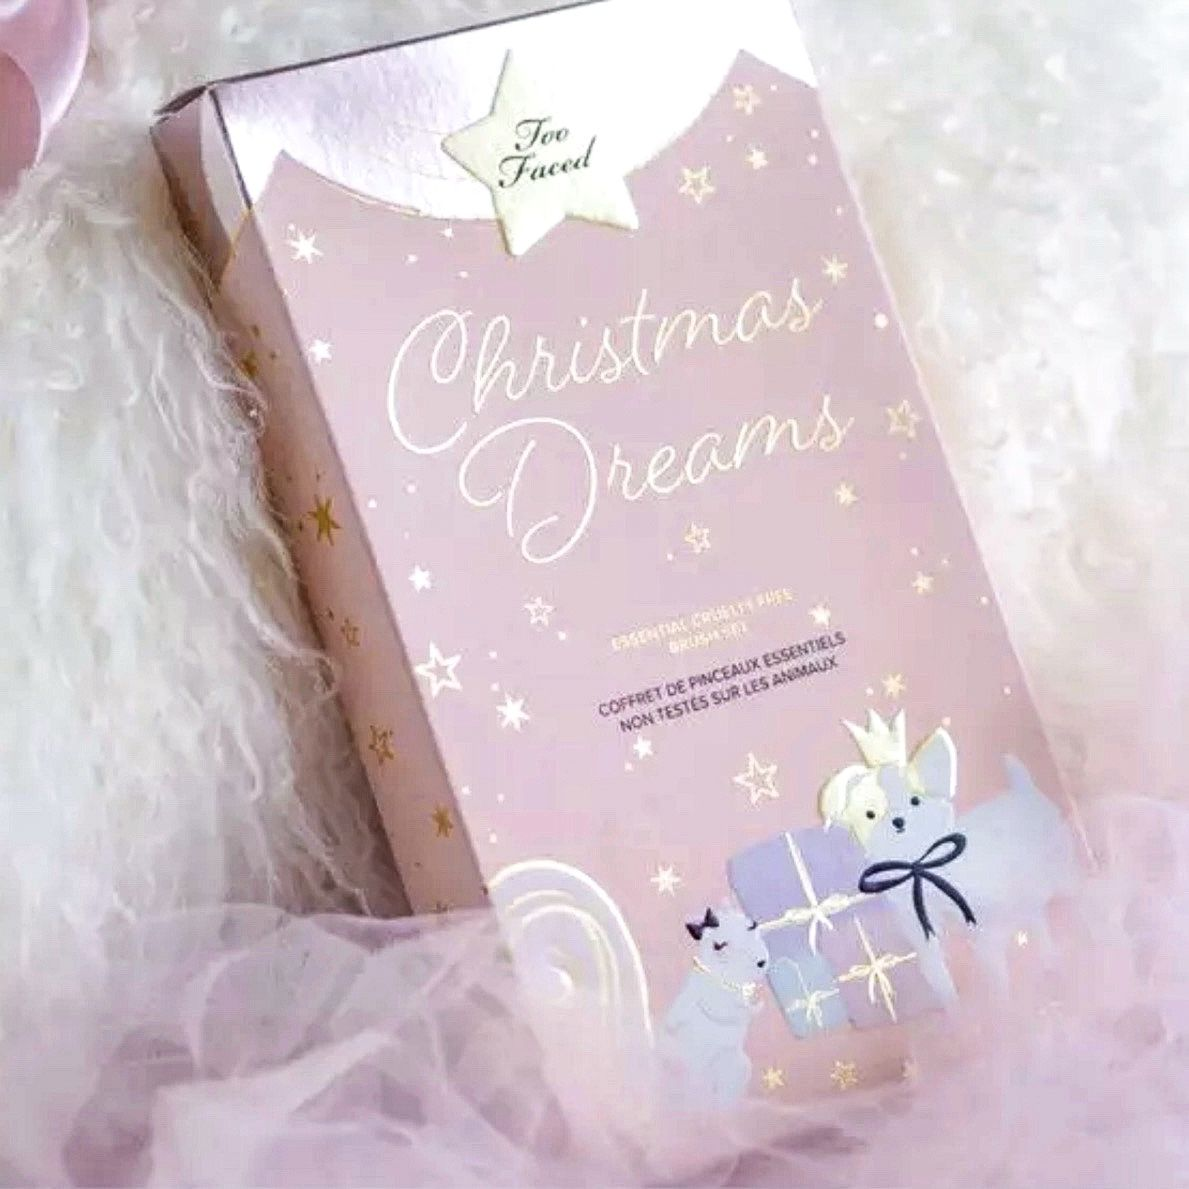 Christmas Dreams 2020 Christmas Dreams 5 pc. Brush Set | Too Faced in 2020 | Ted baker